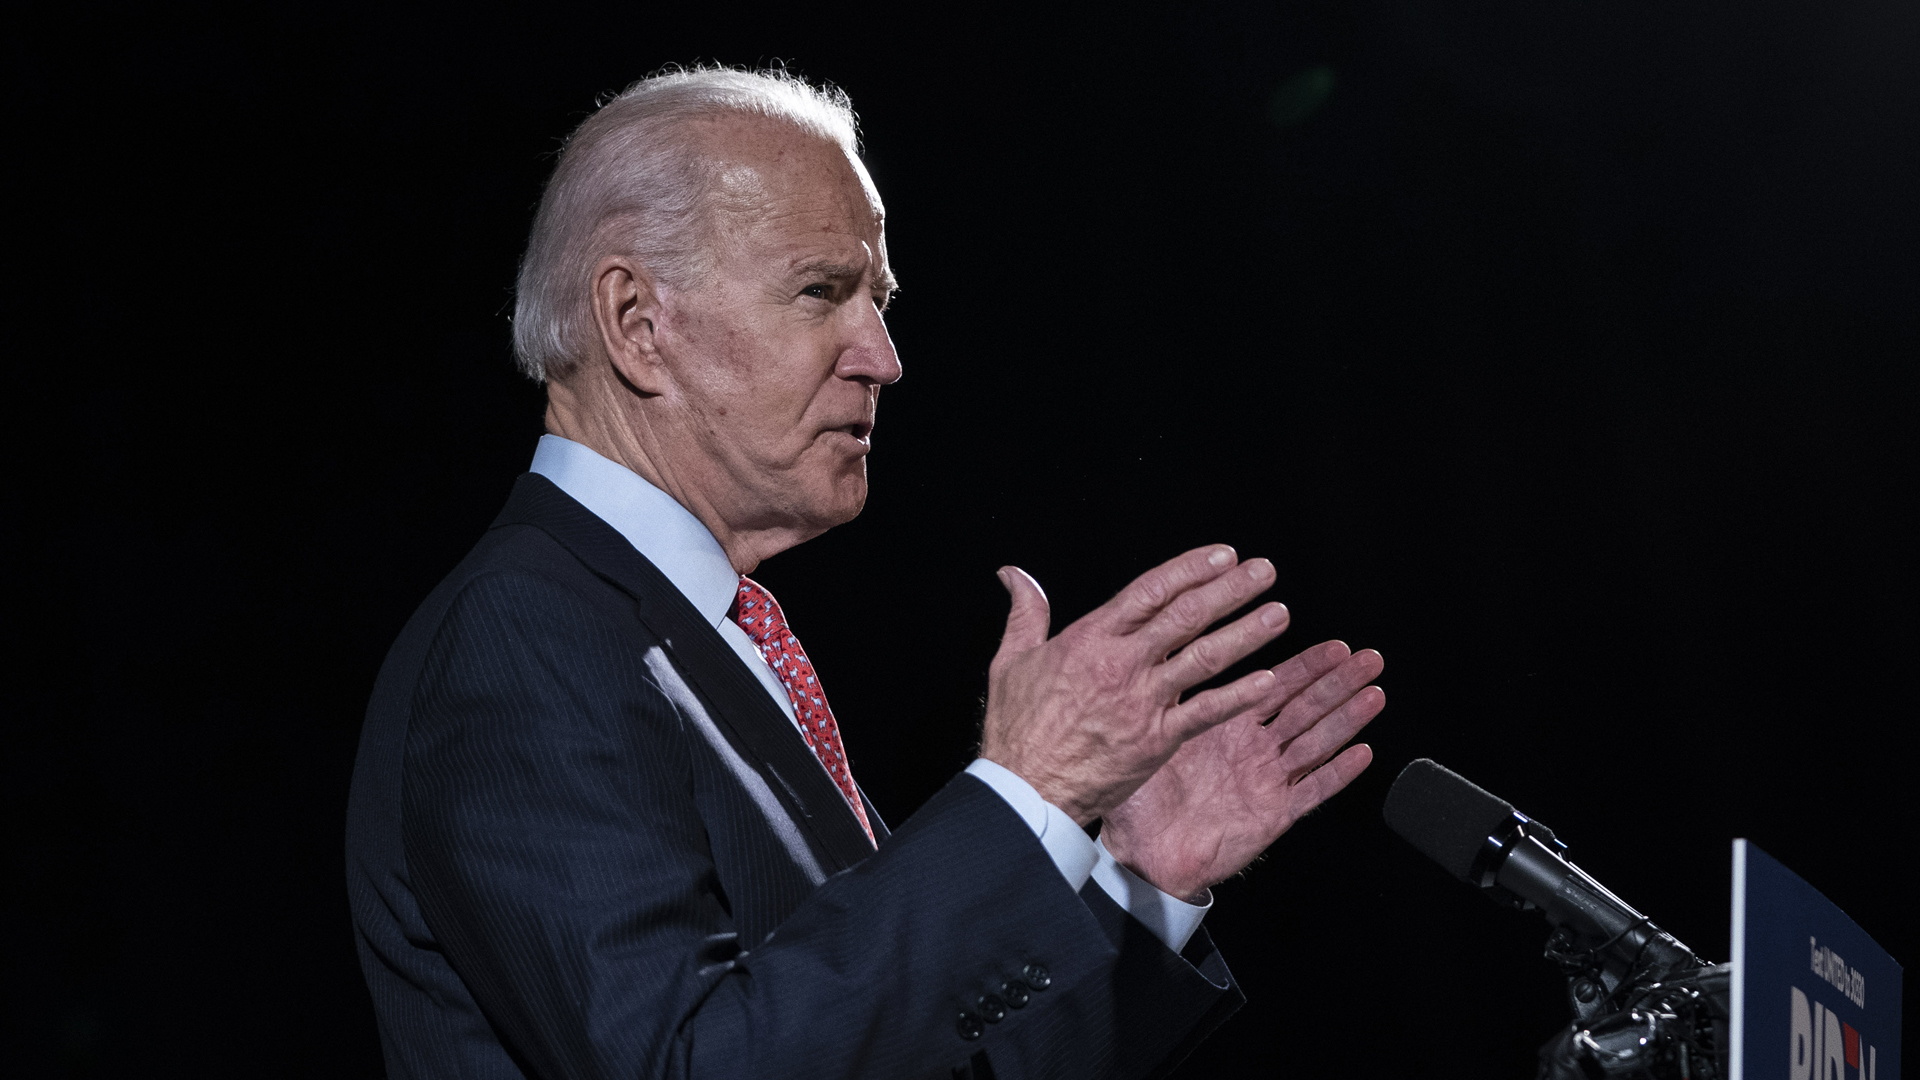 Democratic presidential candidate former Vice President Joe Biden delivers remarks about the coronavirus outbreak, at the Hotel Du Pont March 12, 2020 in Wilmington, Delaware. (Drew Angerer/Getty Images)